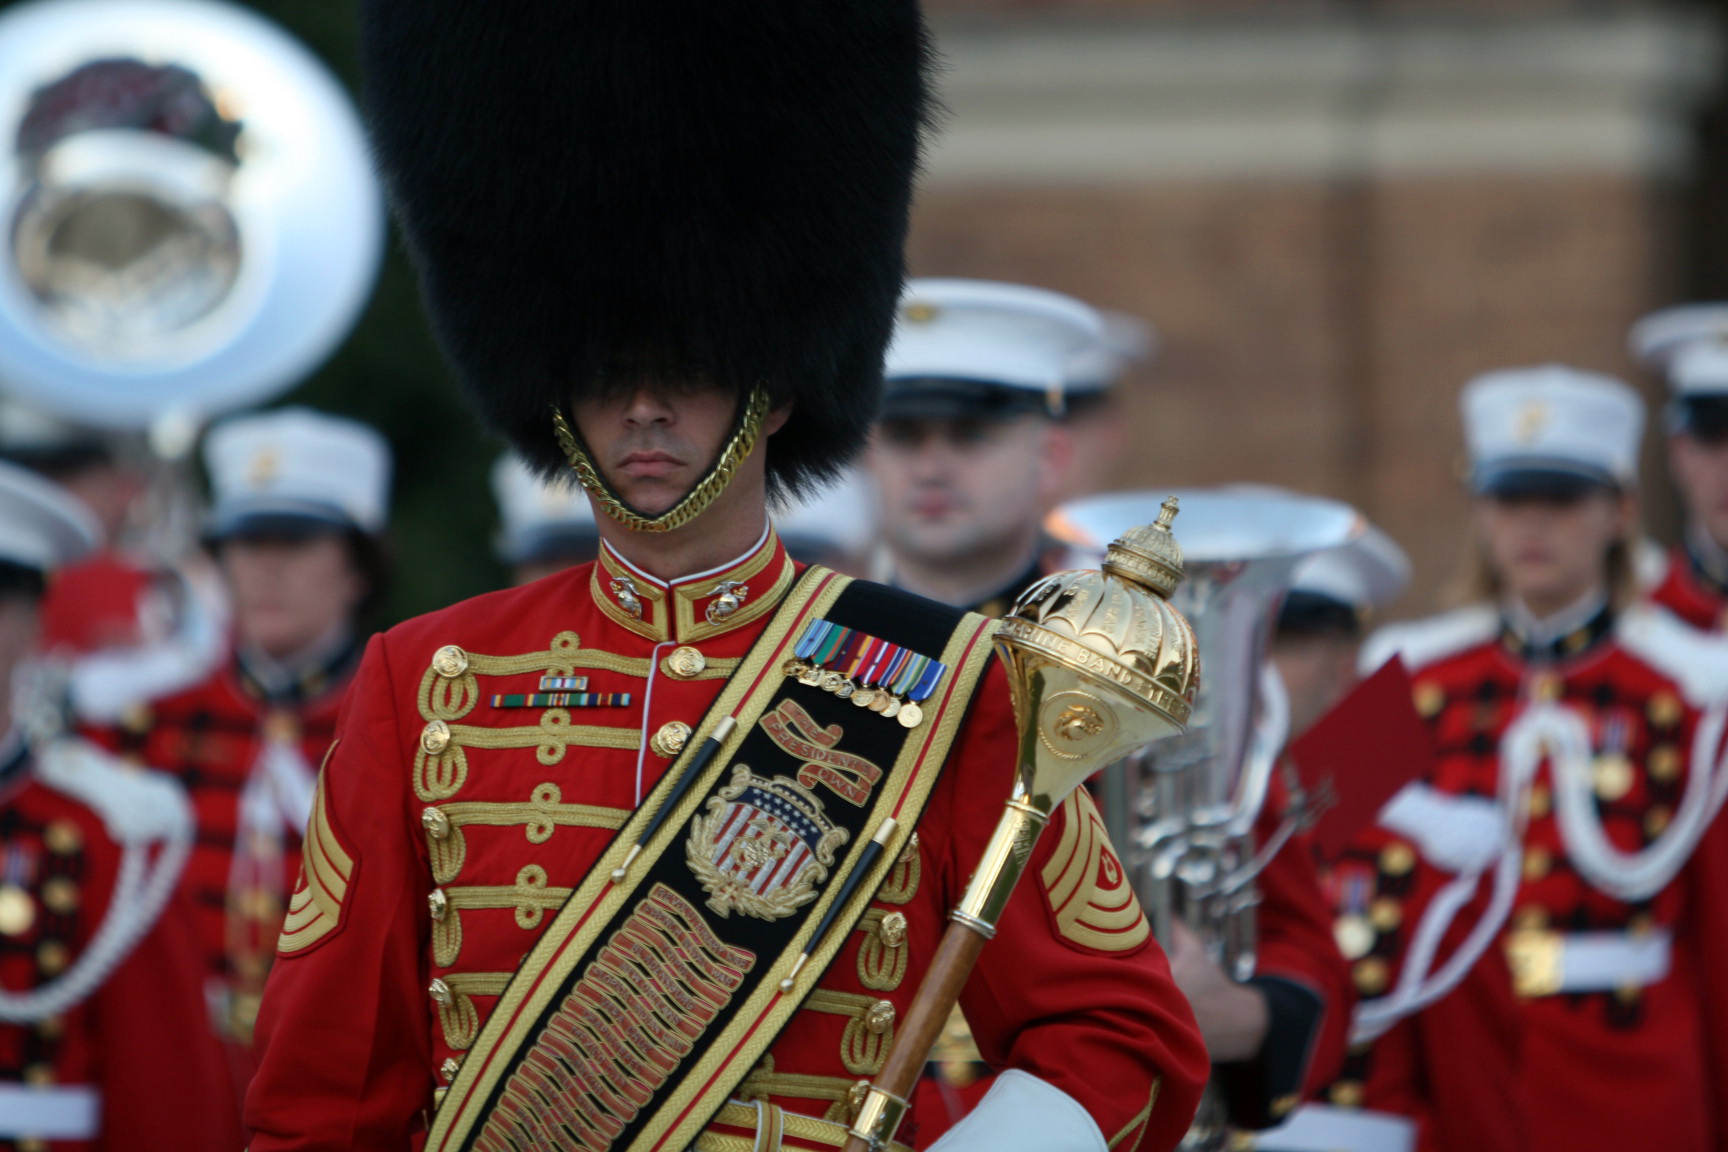 list of united states military premier ensembles the u s marine band drum major the u s marine band behind him